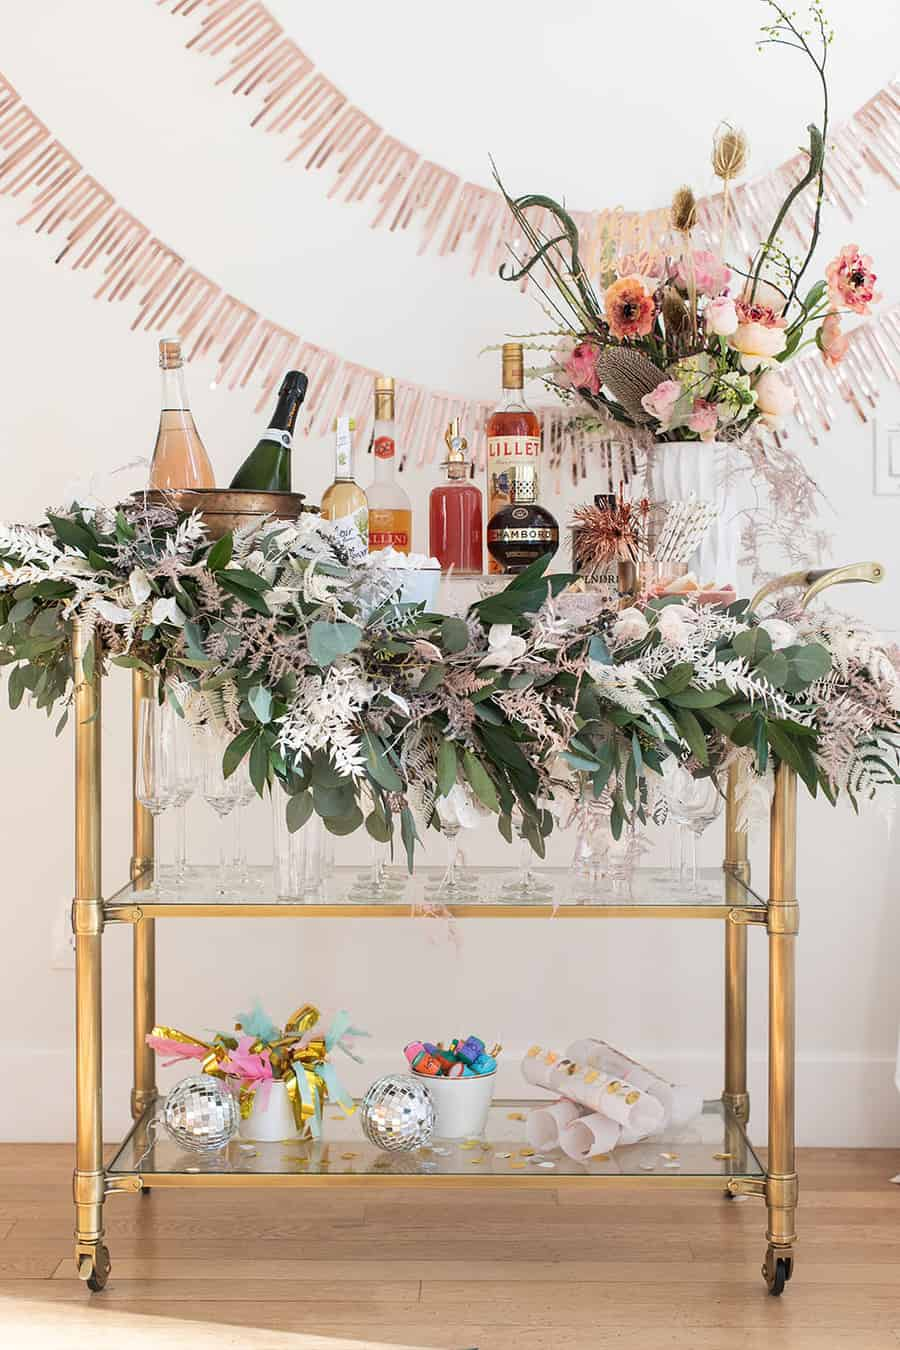 New Year's Eve Champagne Bar with garland, glasses, flowers and decorations.